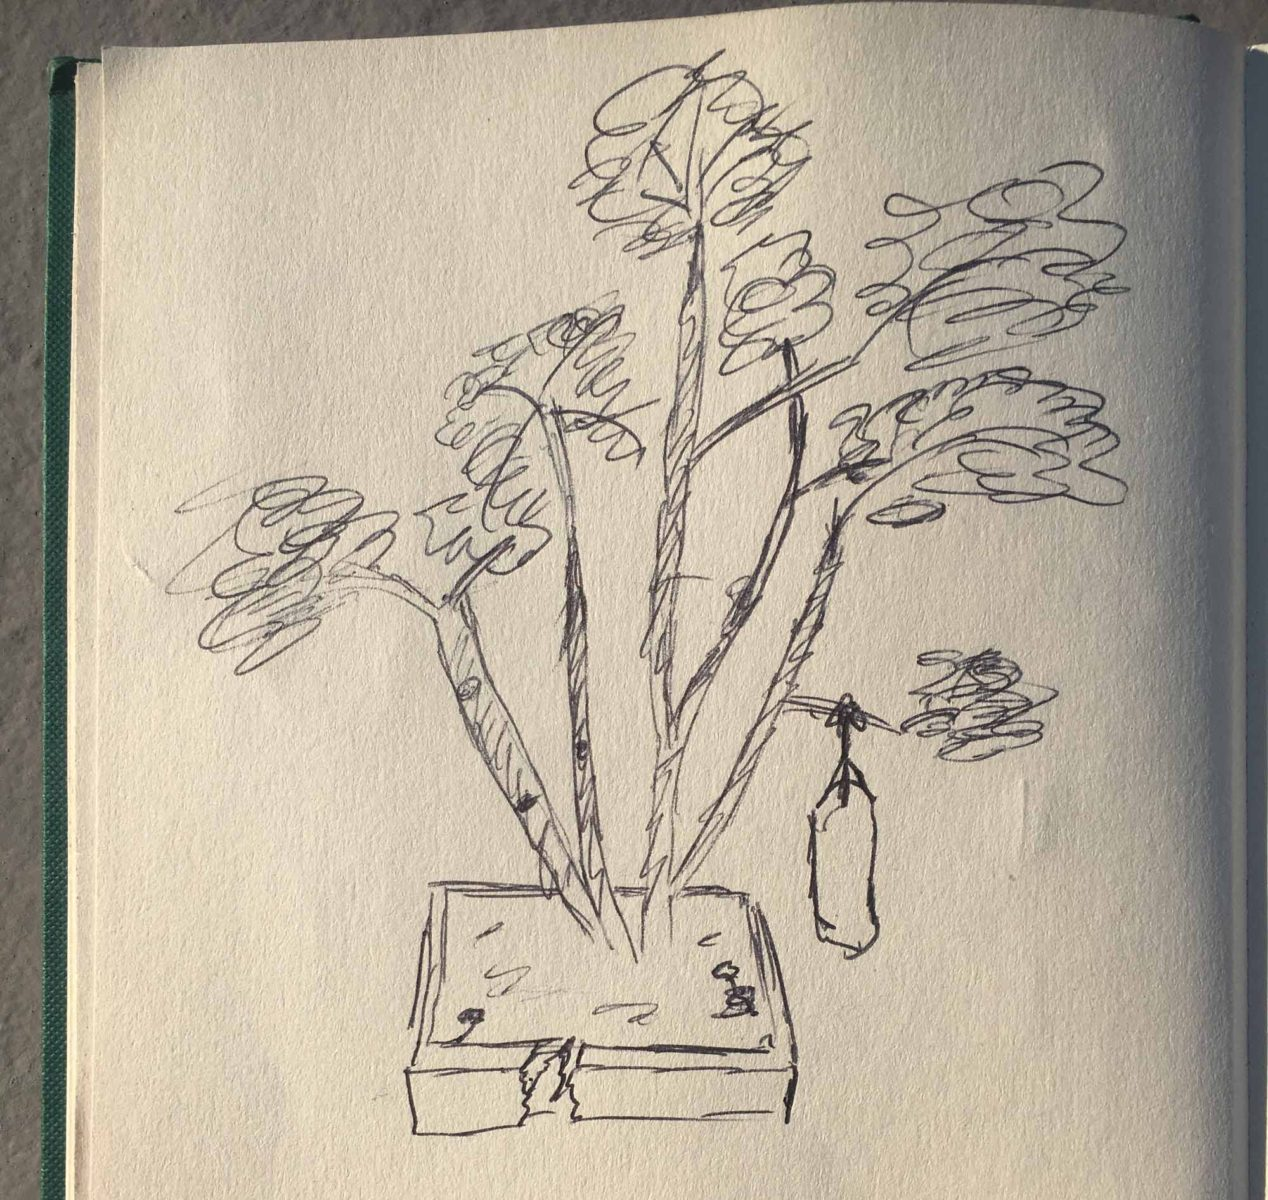 Bad drawing of tree in the hostel